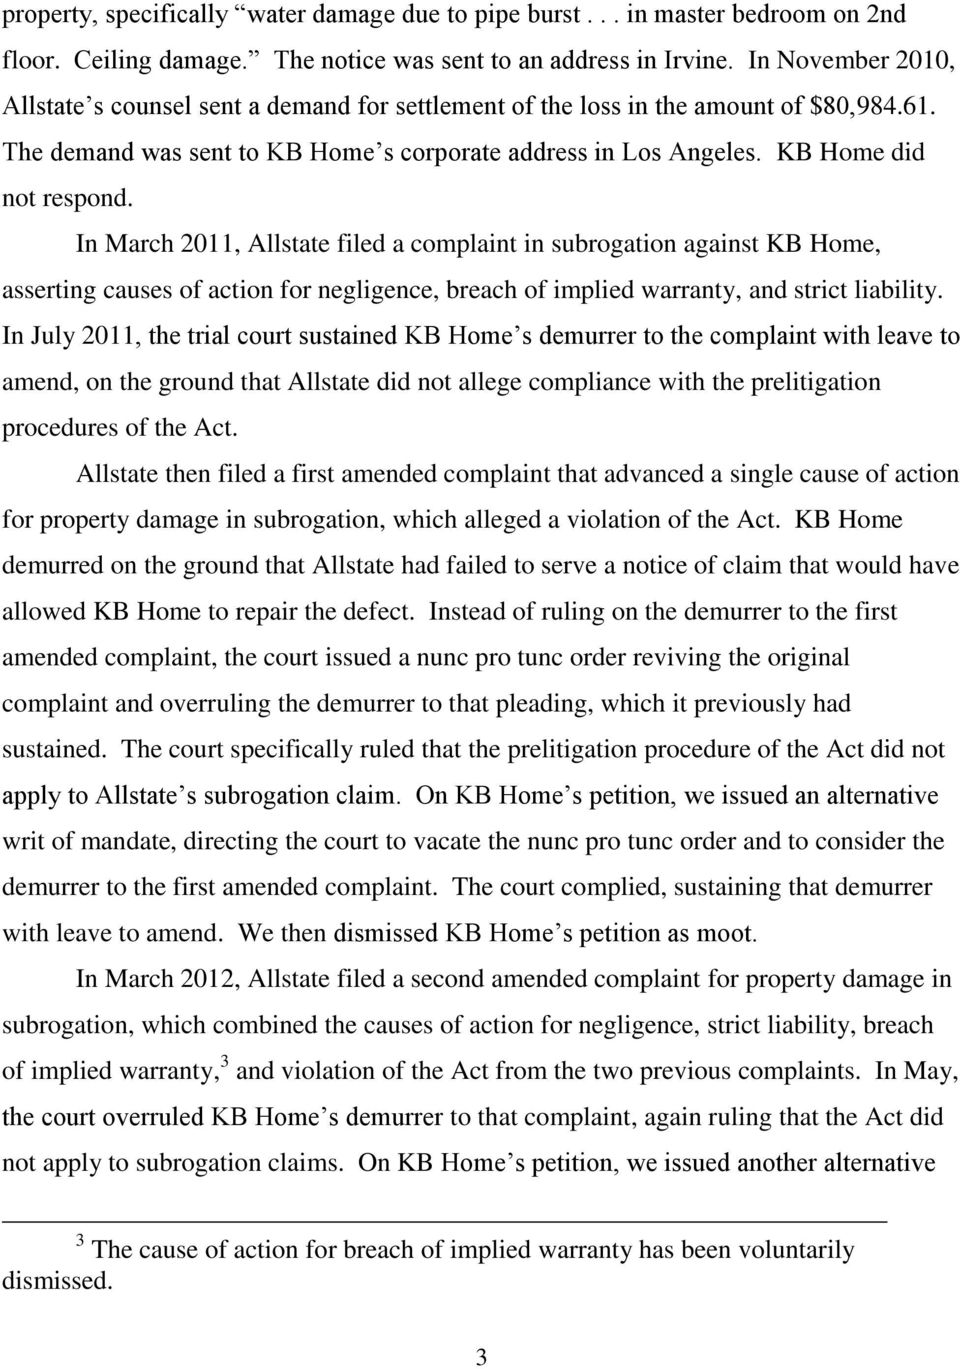 In March 2011, Allstate filed a complaint in subrogation against KB Home, asserting causes of action for negligence, breach of implied warranty, and strict liability.